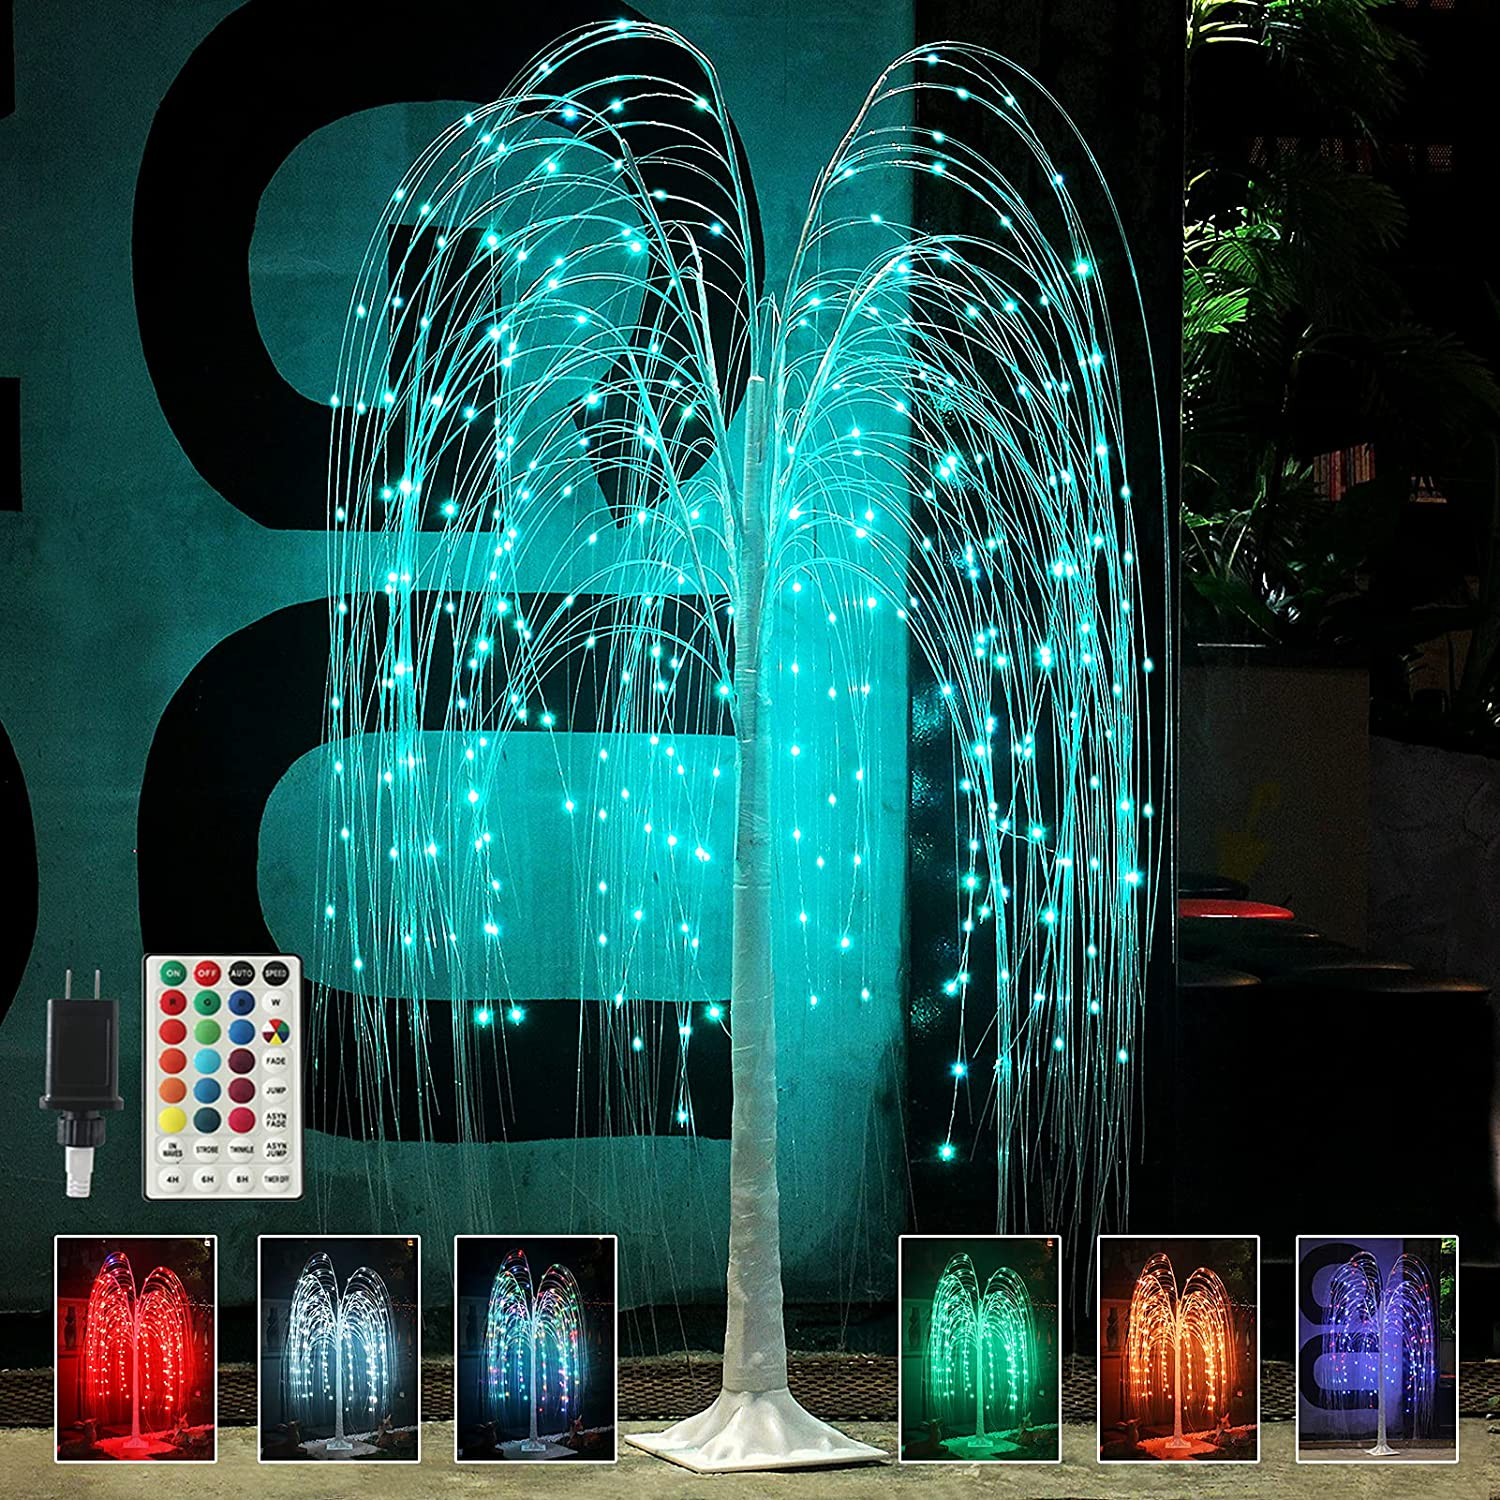 Fashionlite 5FT Colorful Led Lighted Willow Tree Christmas Decoration with 16 Color Changing Timer Remote, String Fairy Light Artificial Tree for Indoor Outdoor Home Holiday Wedding Party Garden Decor